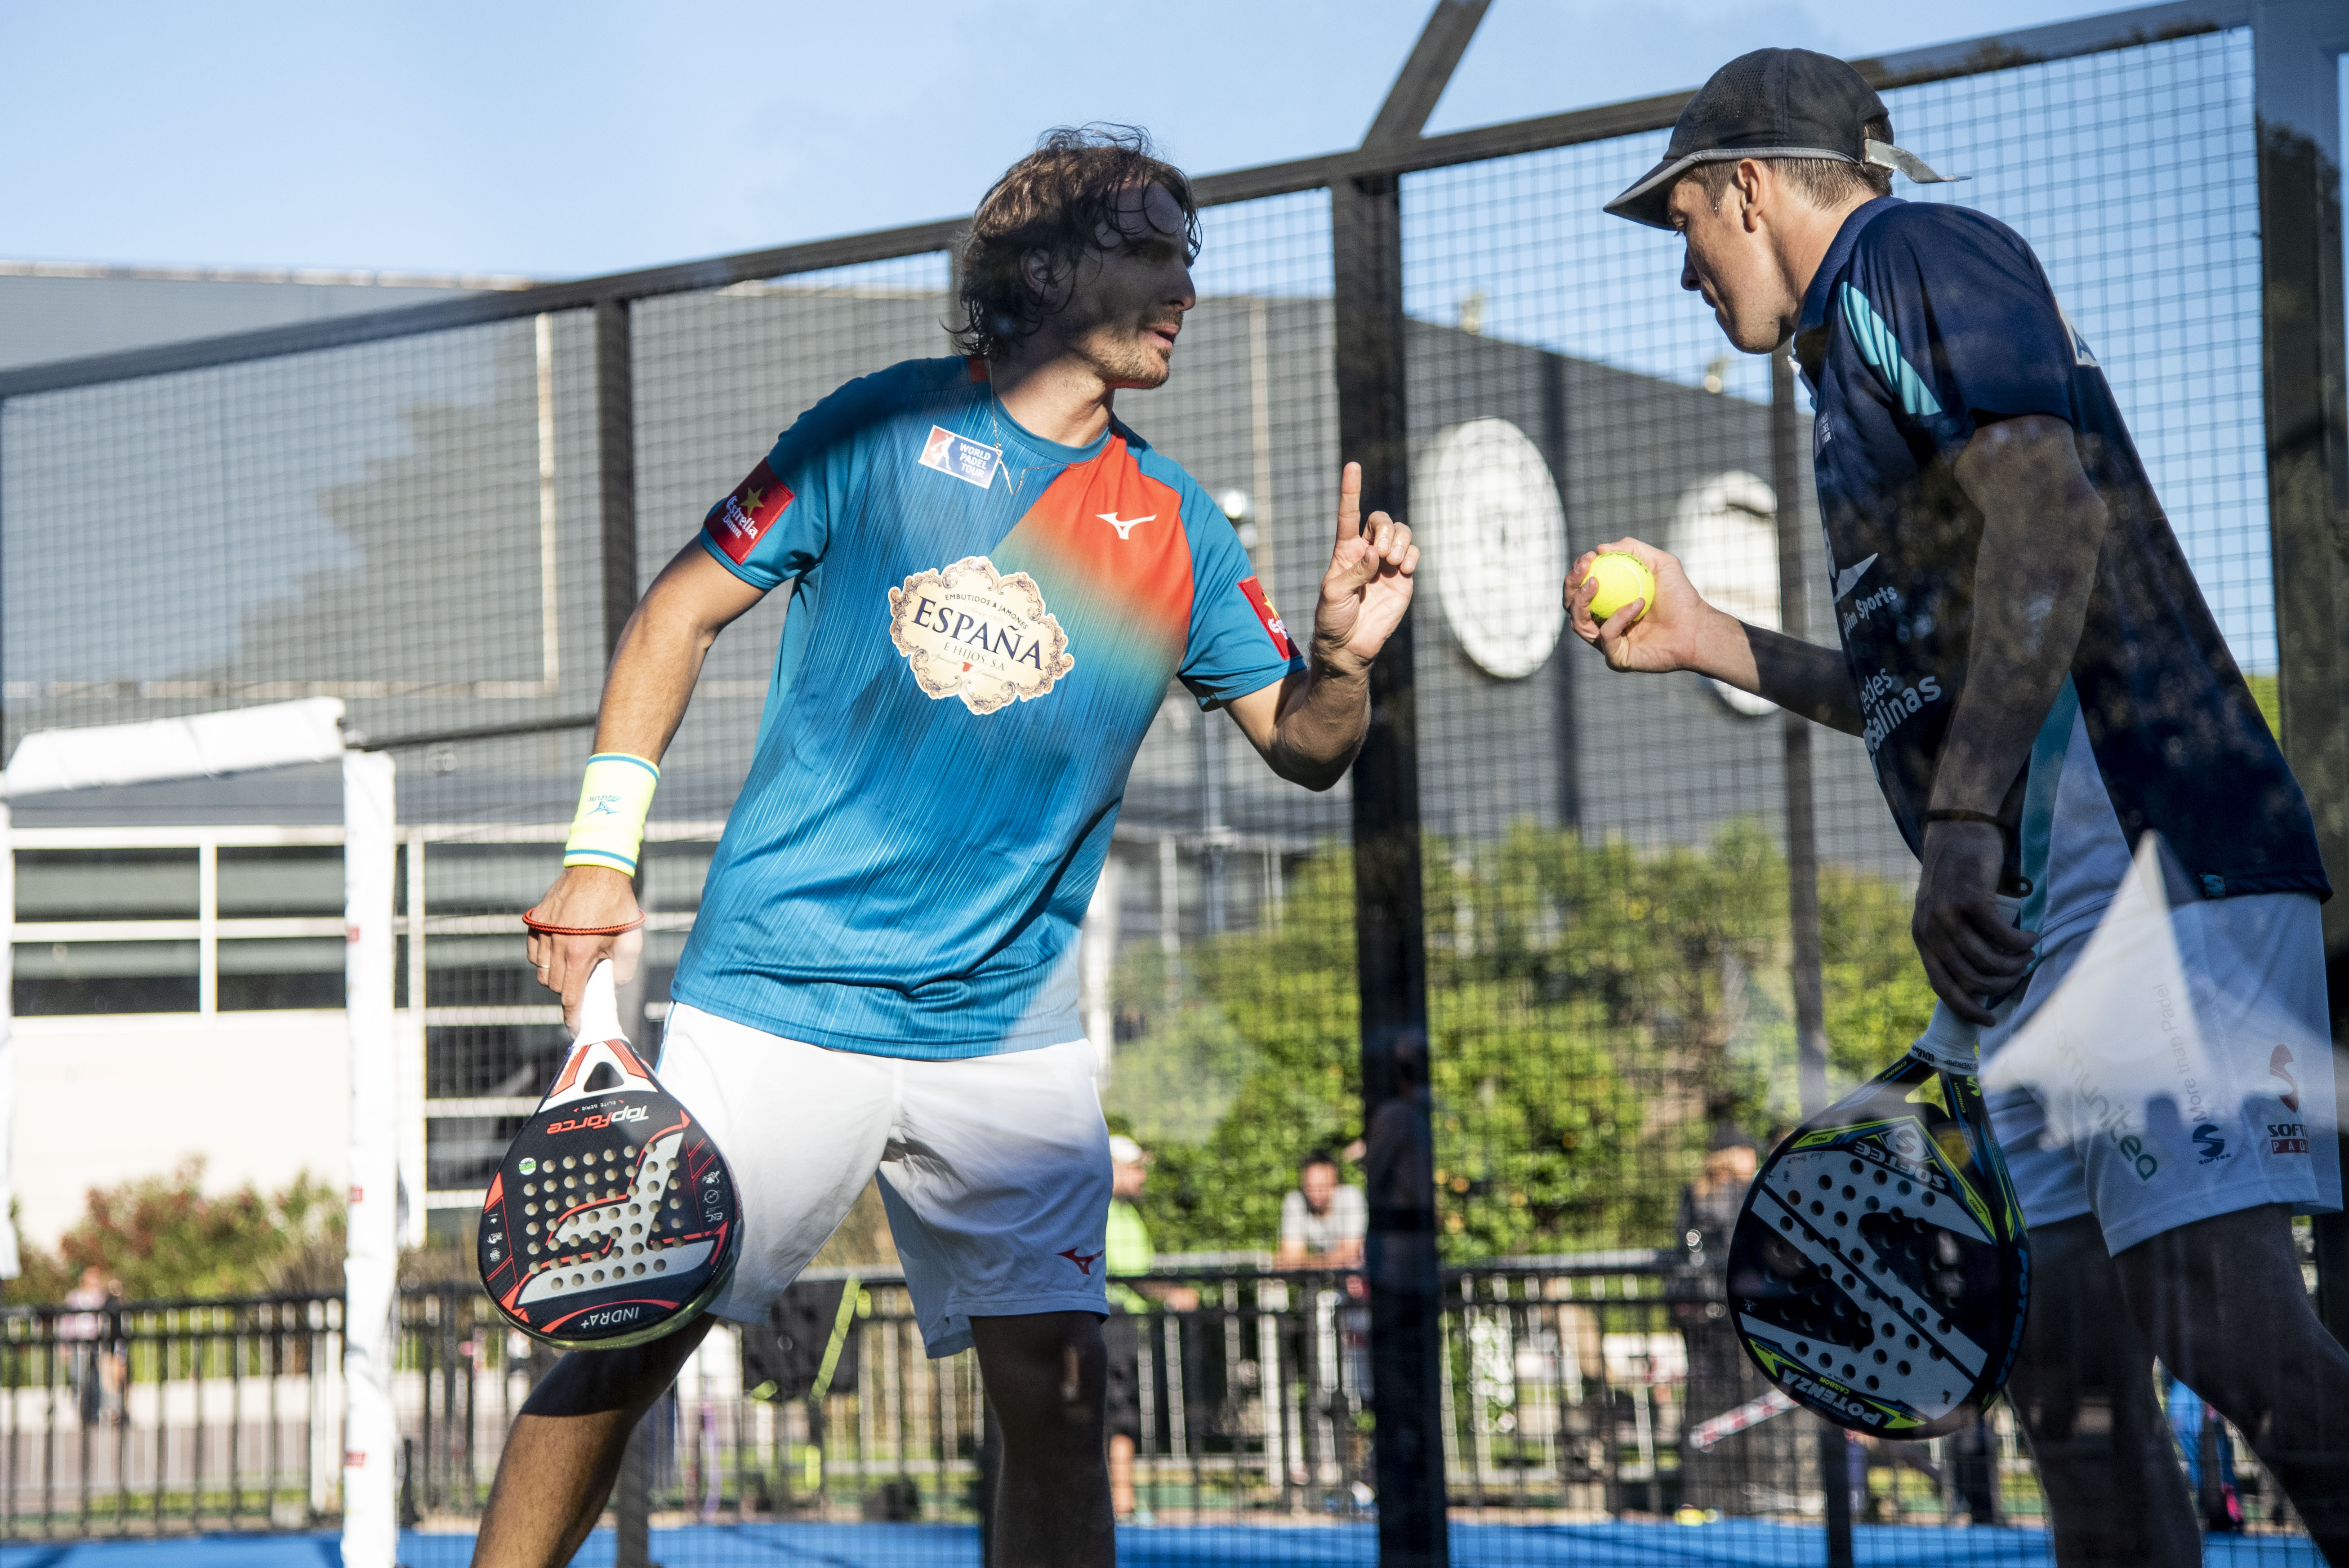 Fede Quiles - Chico Gomes 2 - Dieciseisavos - Buenos Aires Padel Master 2018